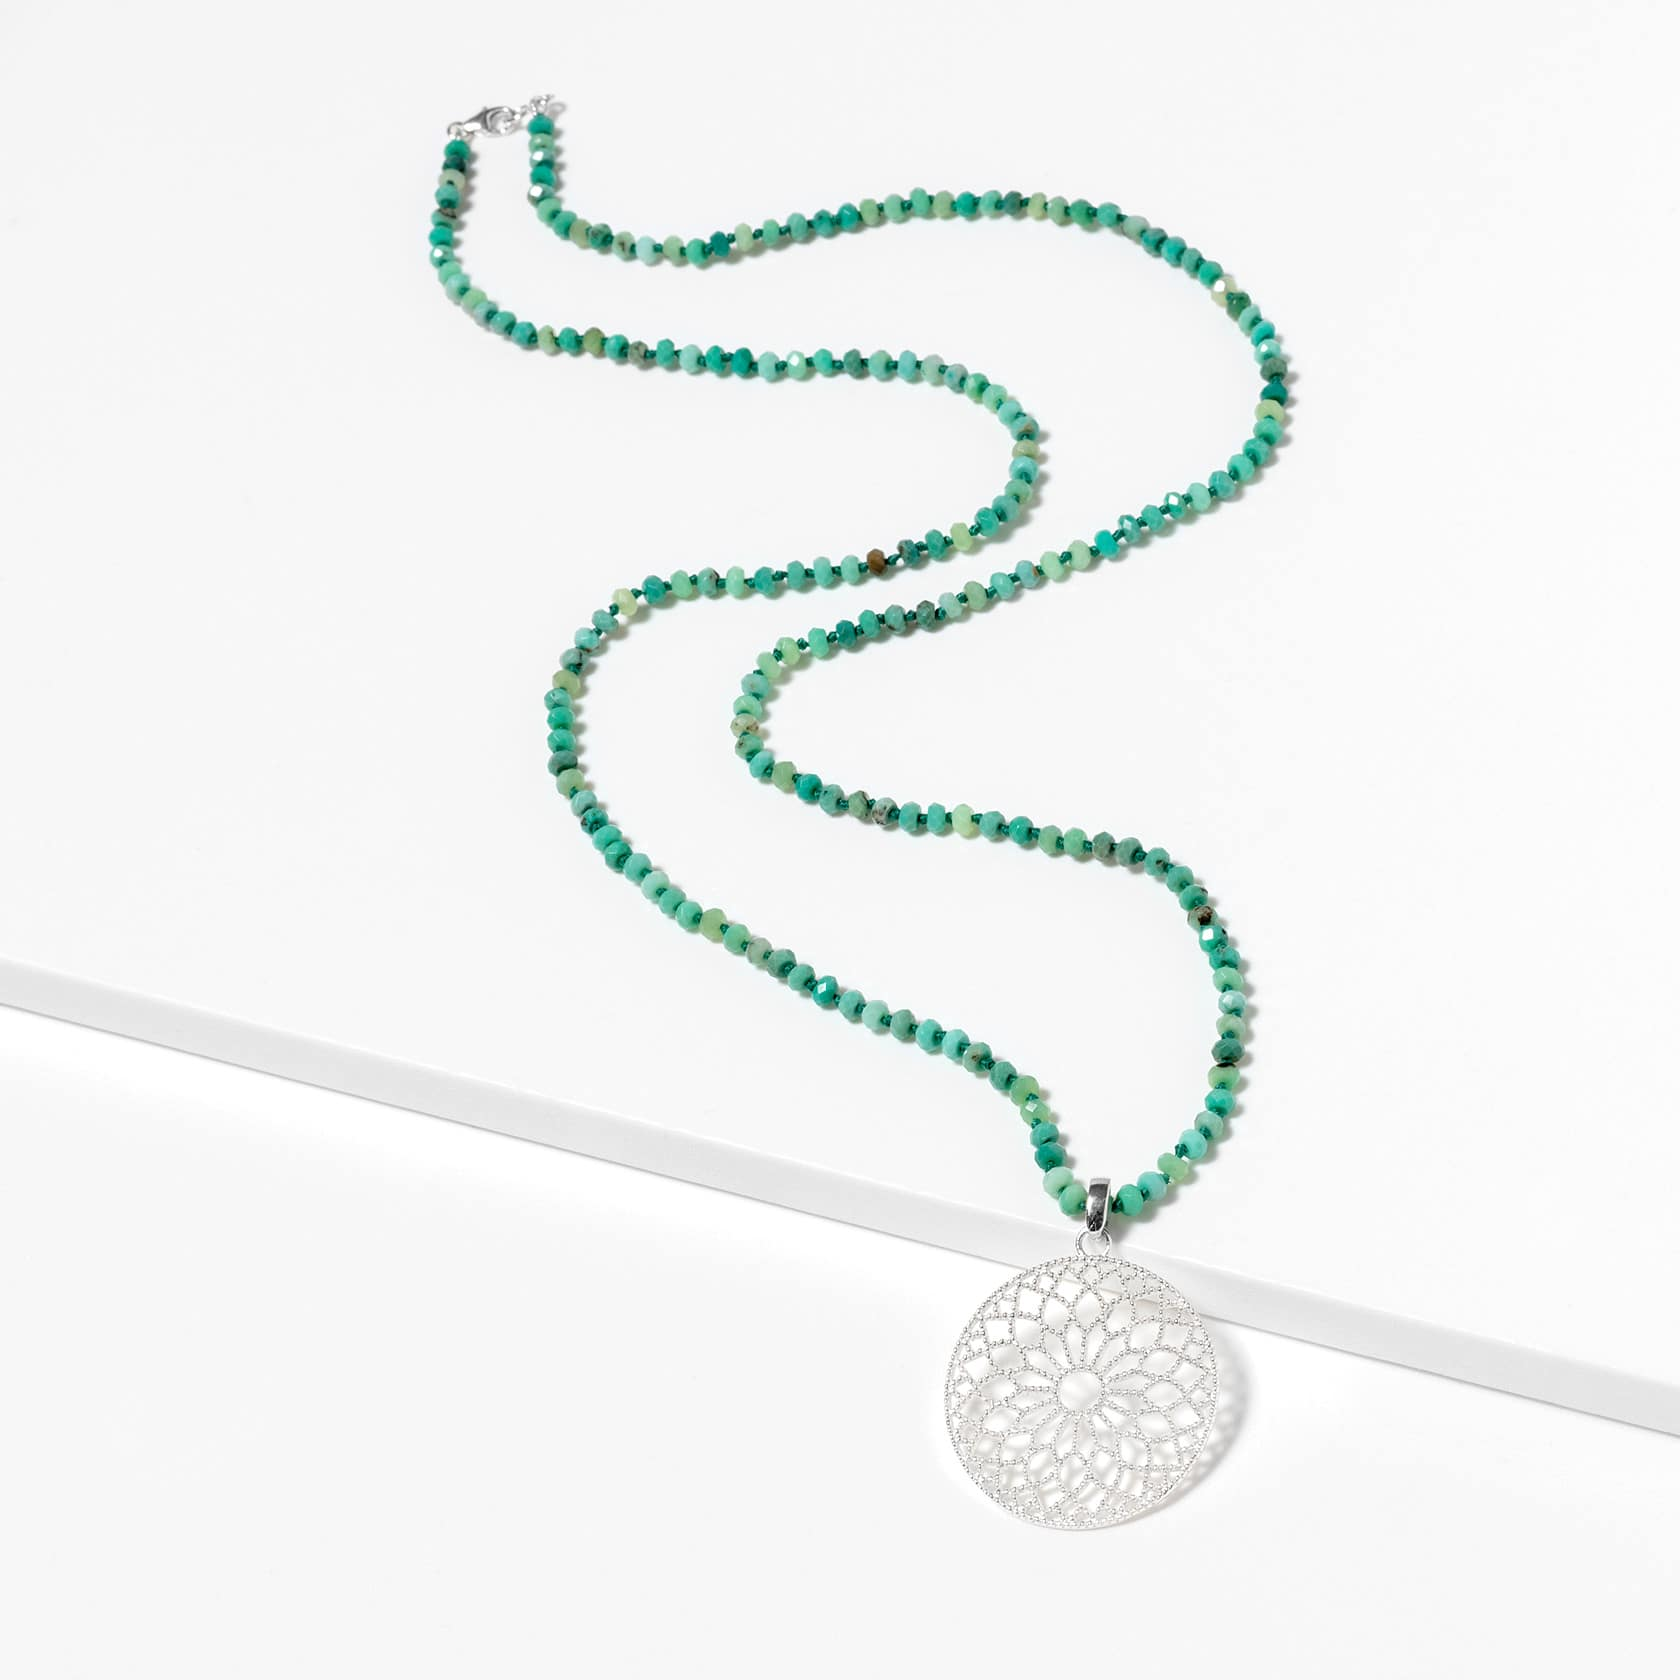 Moana chrysoprase necklace